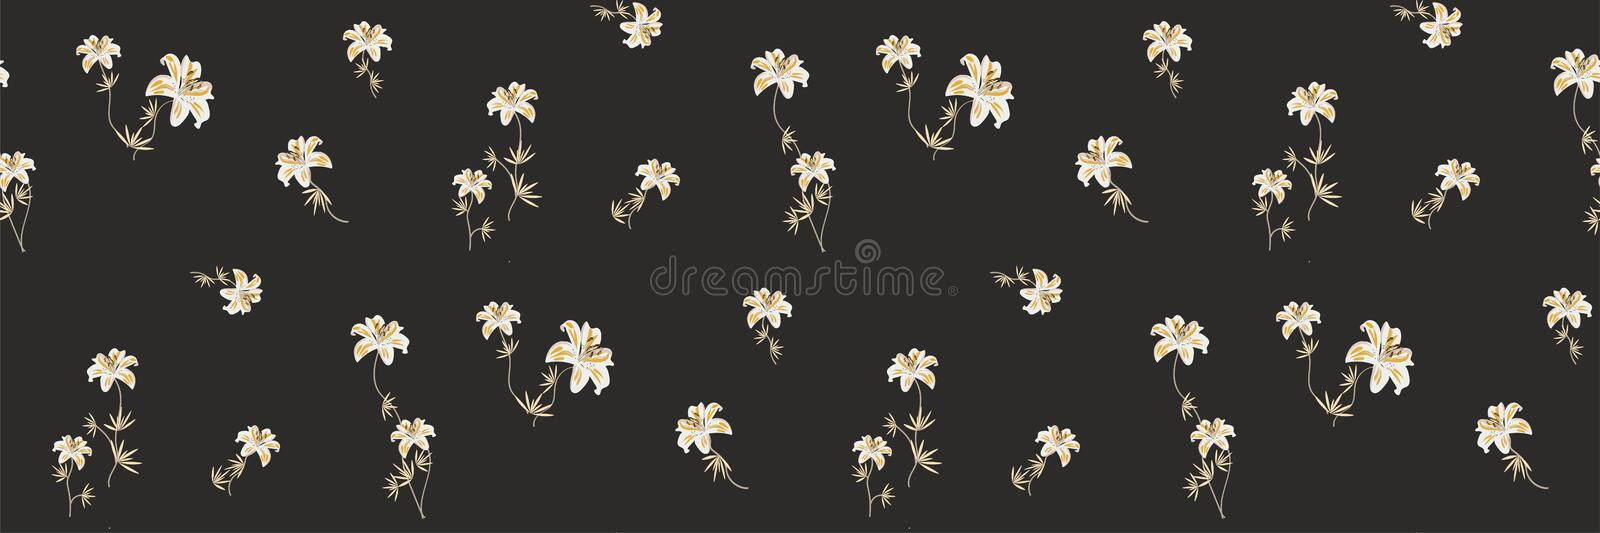 Elegant pattern in small flower. Small white flowers. Lilies on a dark black background. Ditsy floral background. royalty free illustration